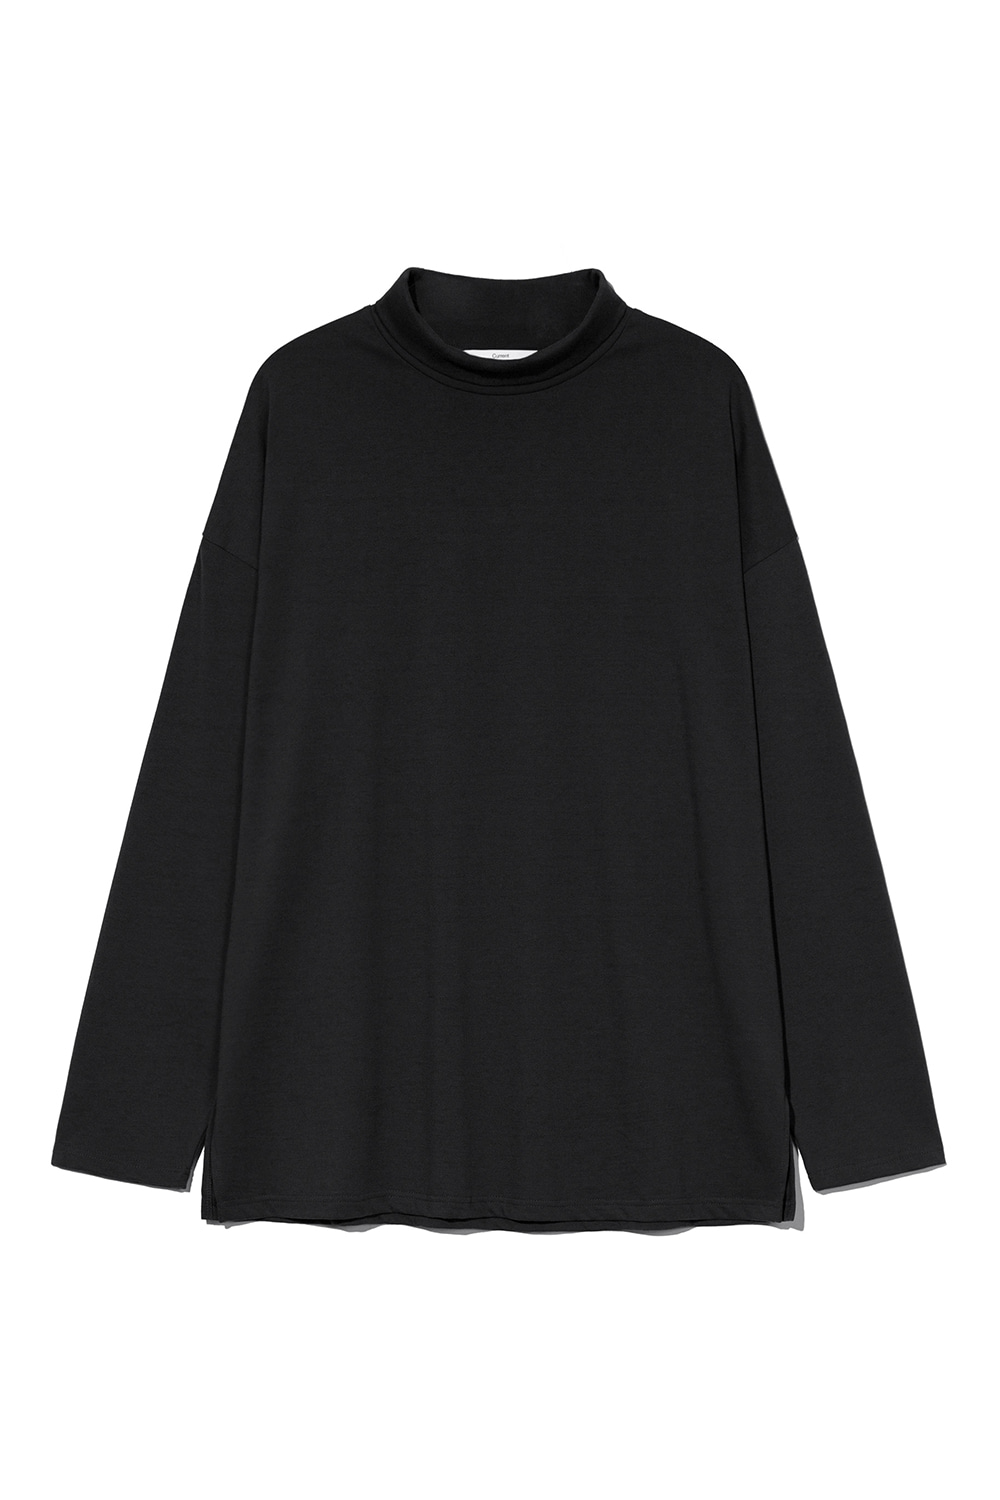 Turtle Neck Long Sleeves Men JA [Black] -10%